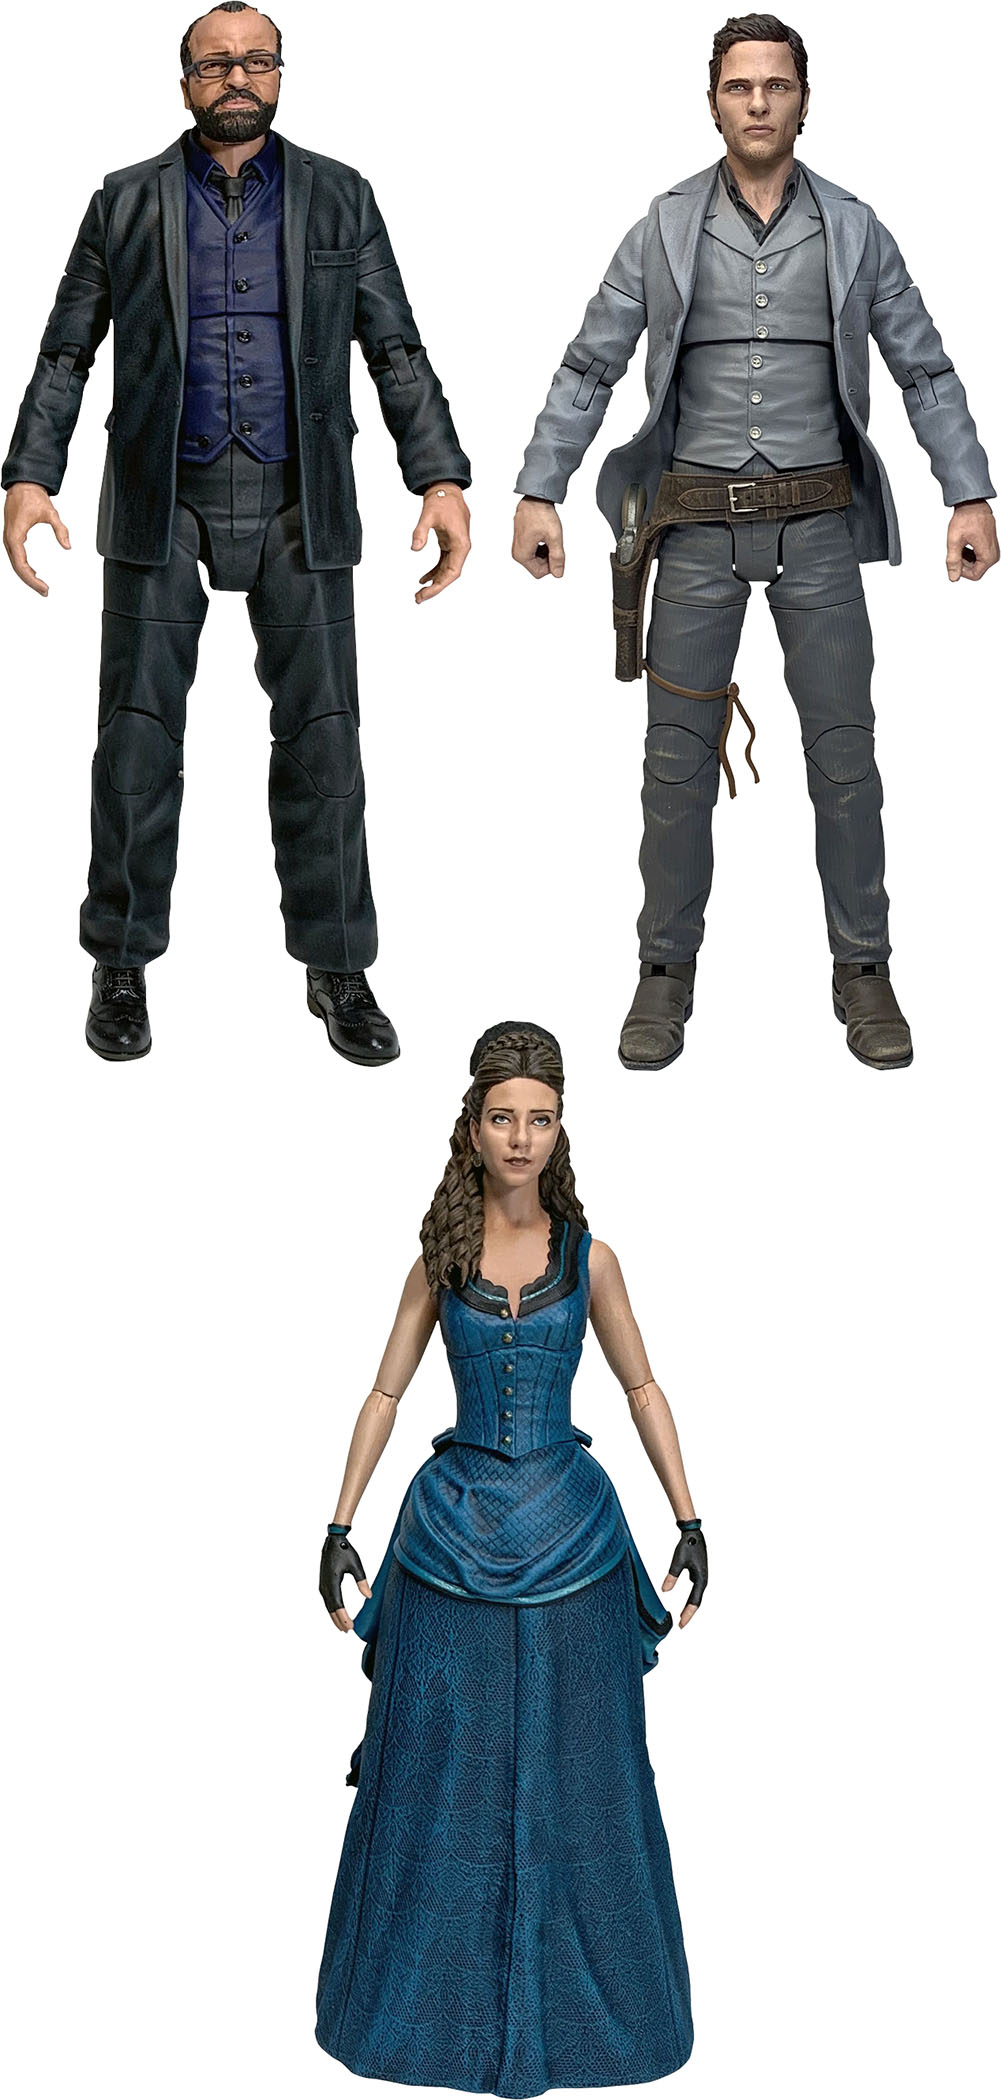 WESTWORLD SELECT SERIES 2 FIGURE ASST